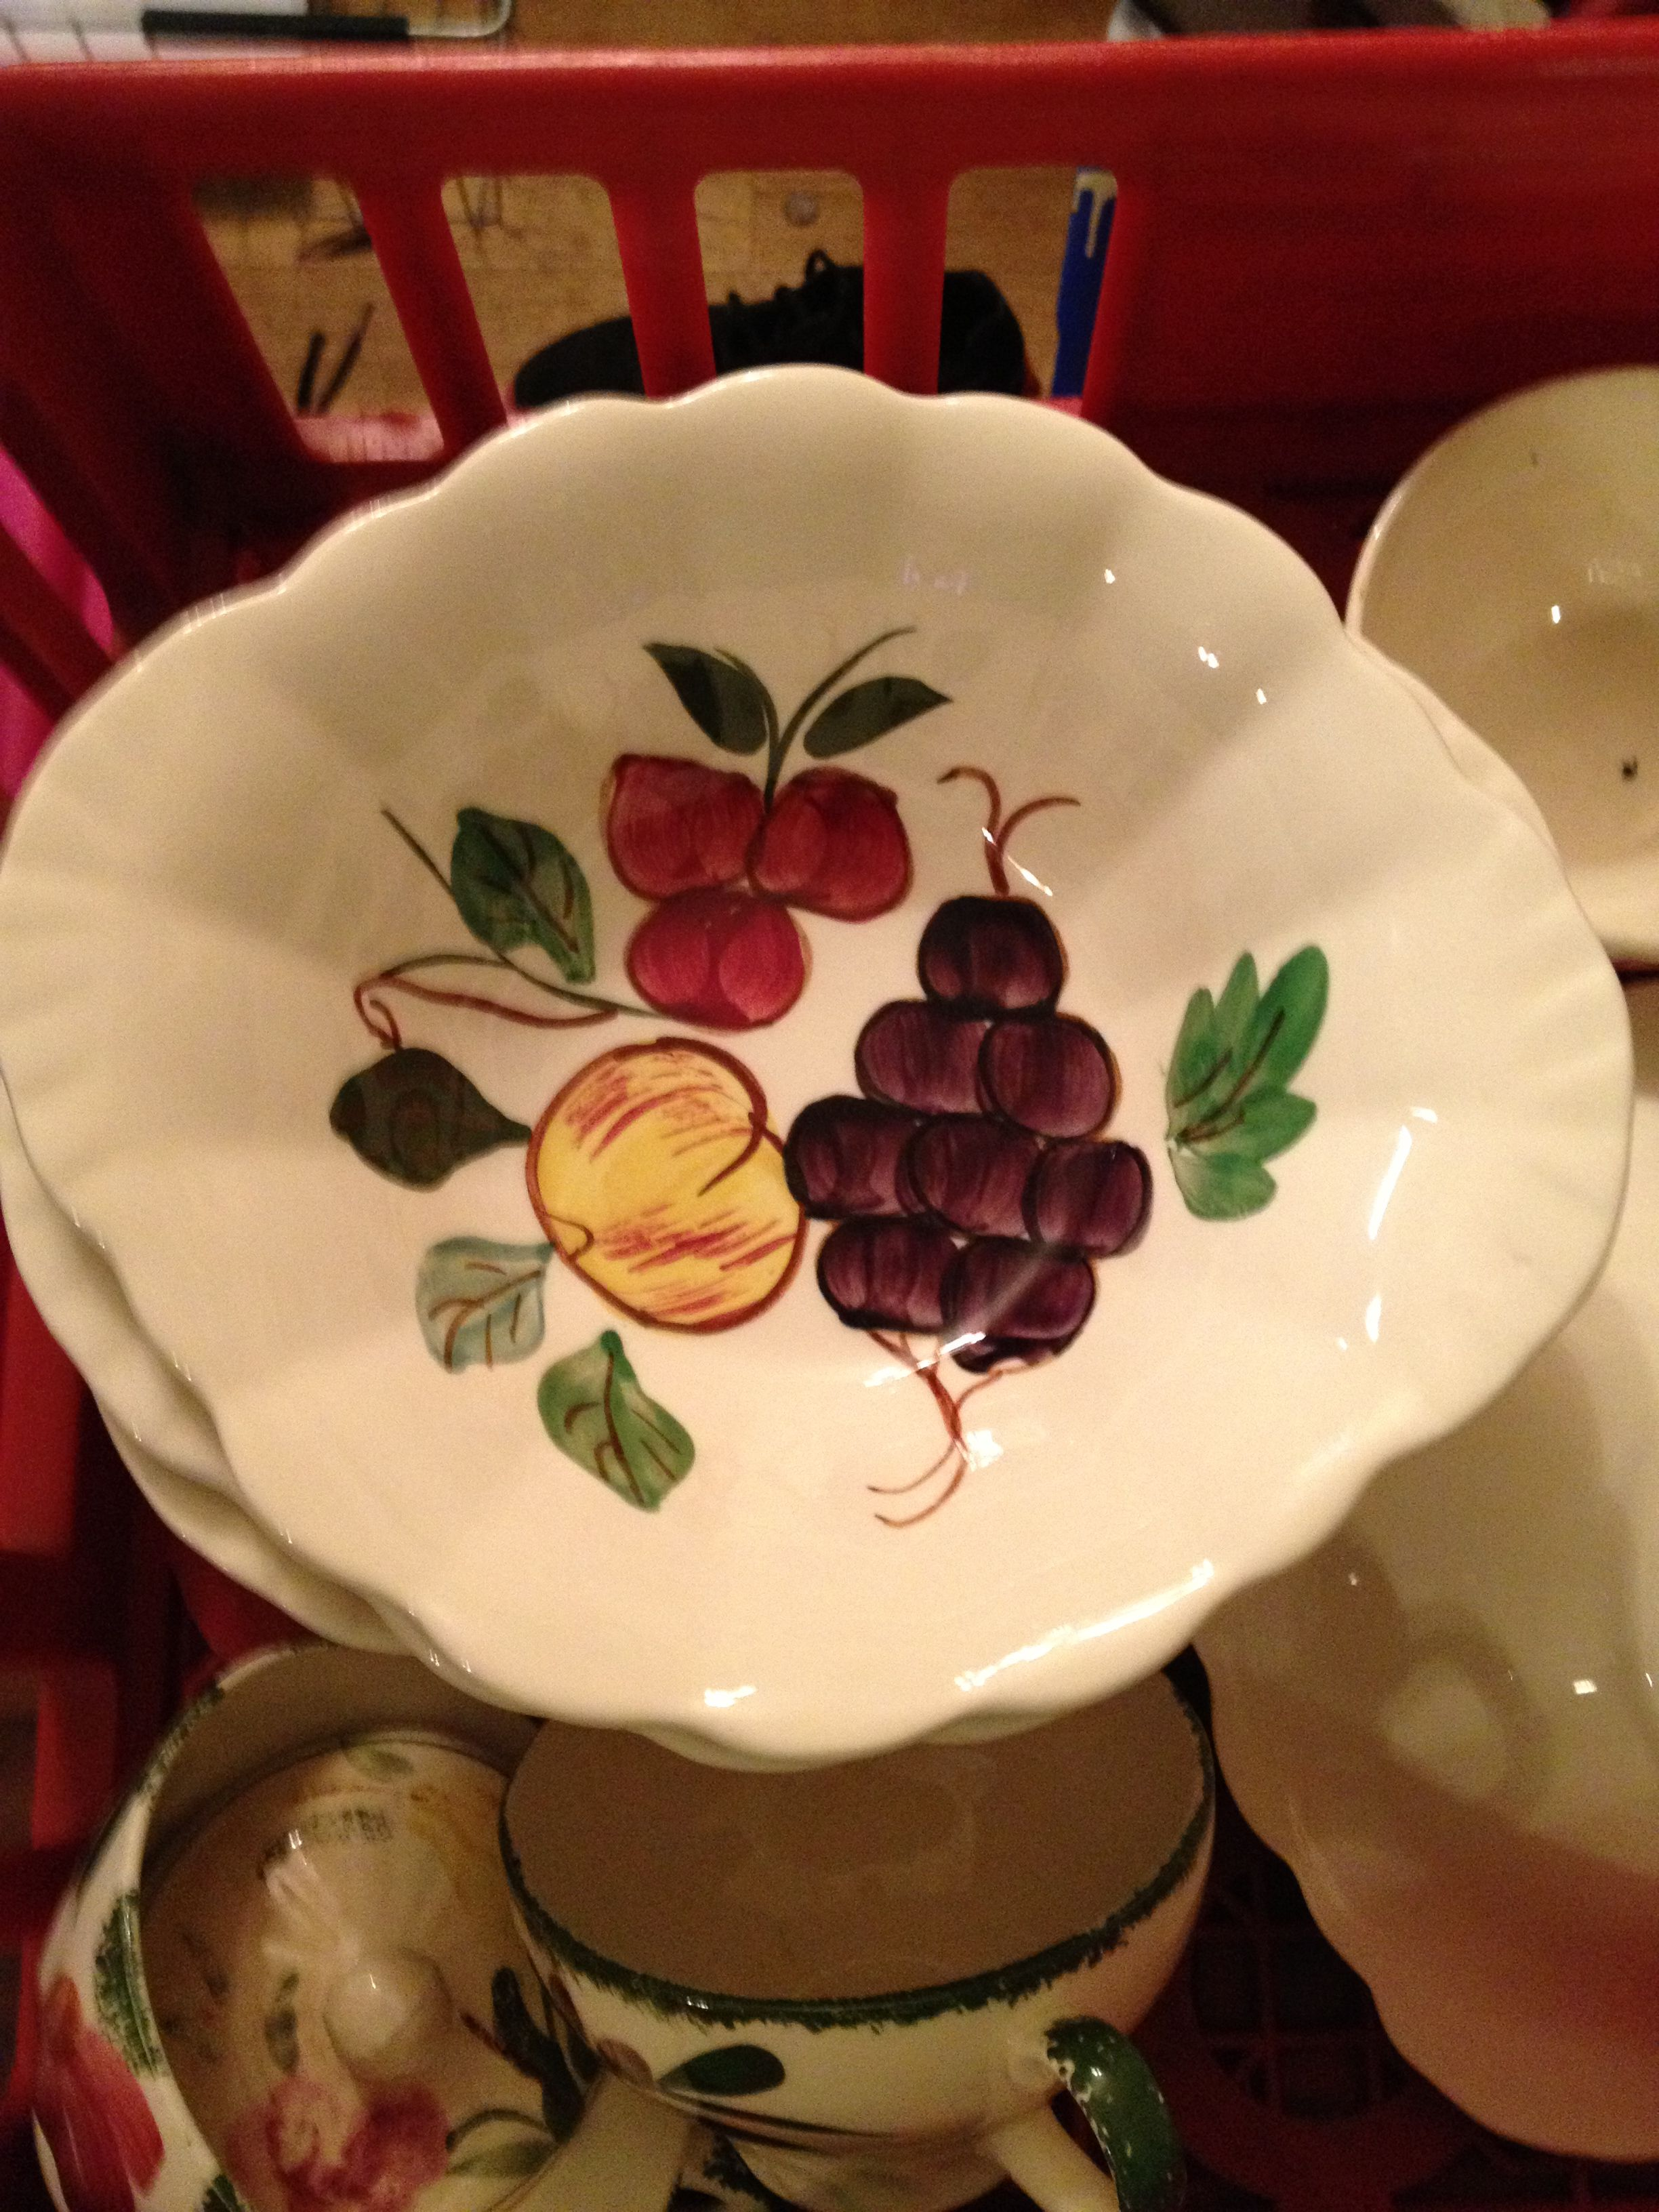 Find this Pin and more on Blue Ridge Dinnerware by mkby. & Blue Ridge Pottery Dinnetware   Blue Ridge Dinnerware   Pinterest ...